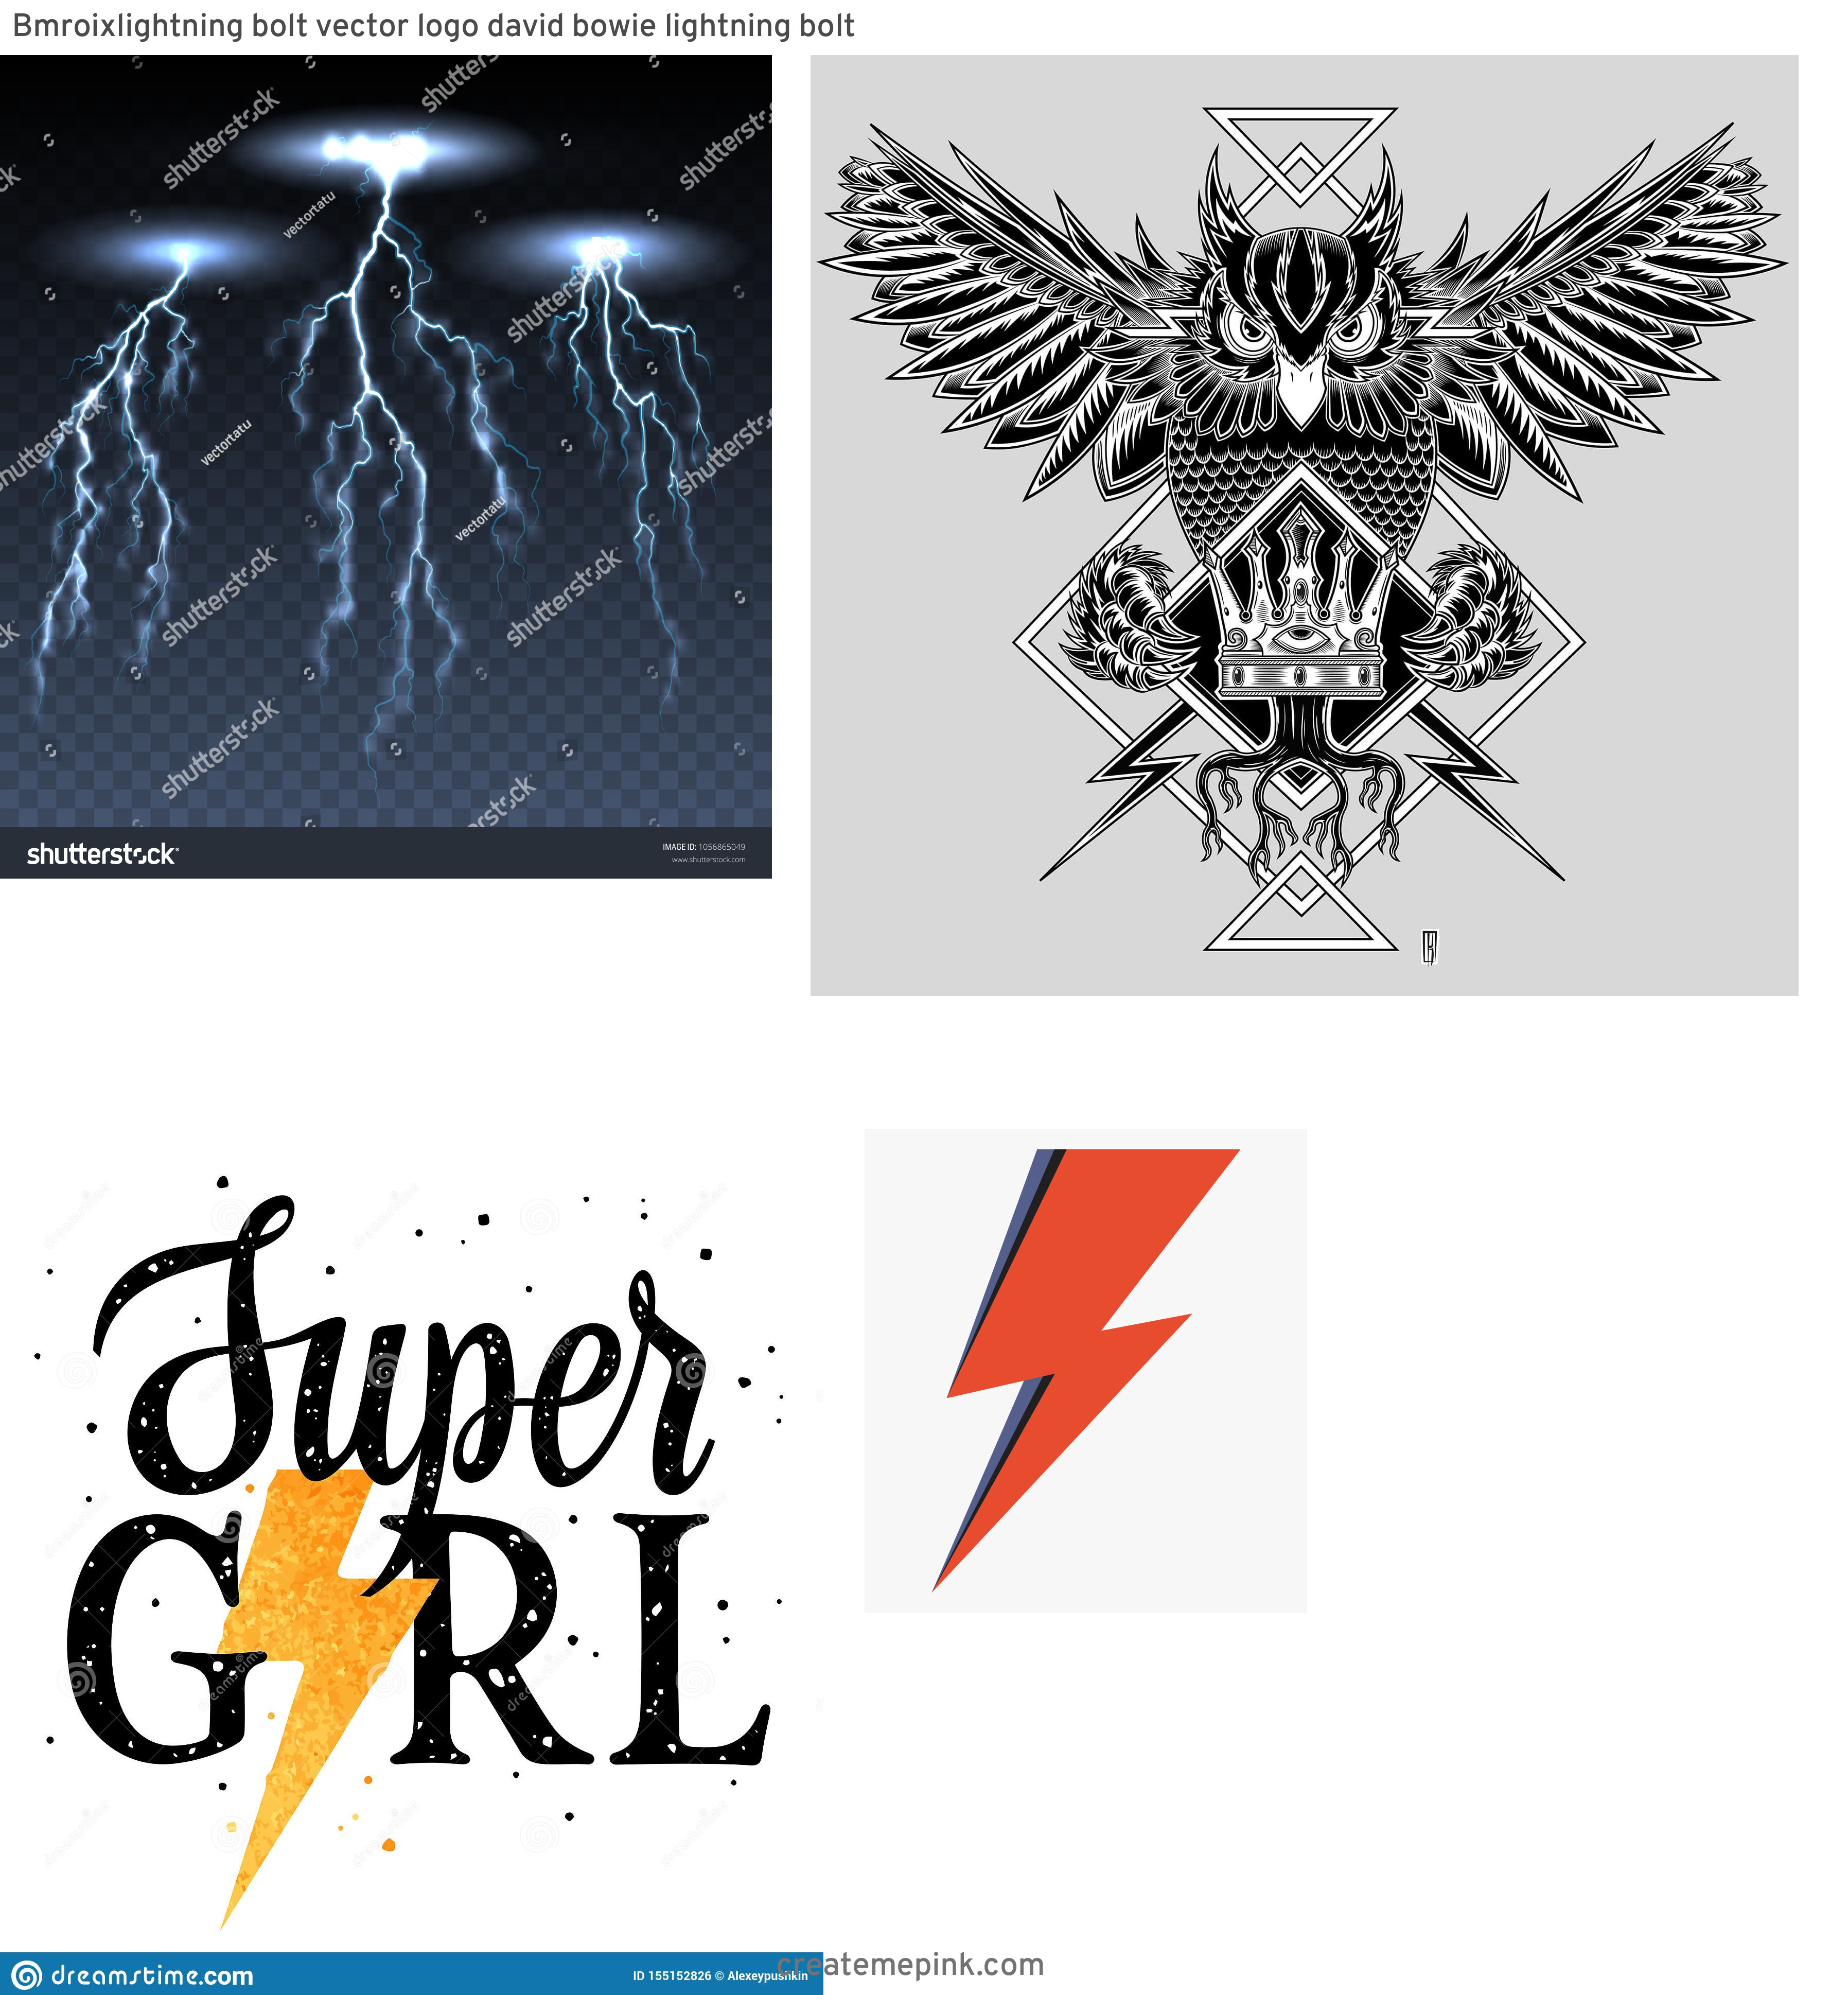 Lightning Vector T: Bmroixlightning Bolt Vector Logo David Bowie Lightning Bolt